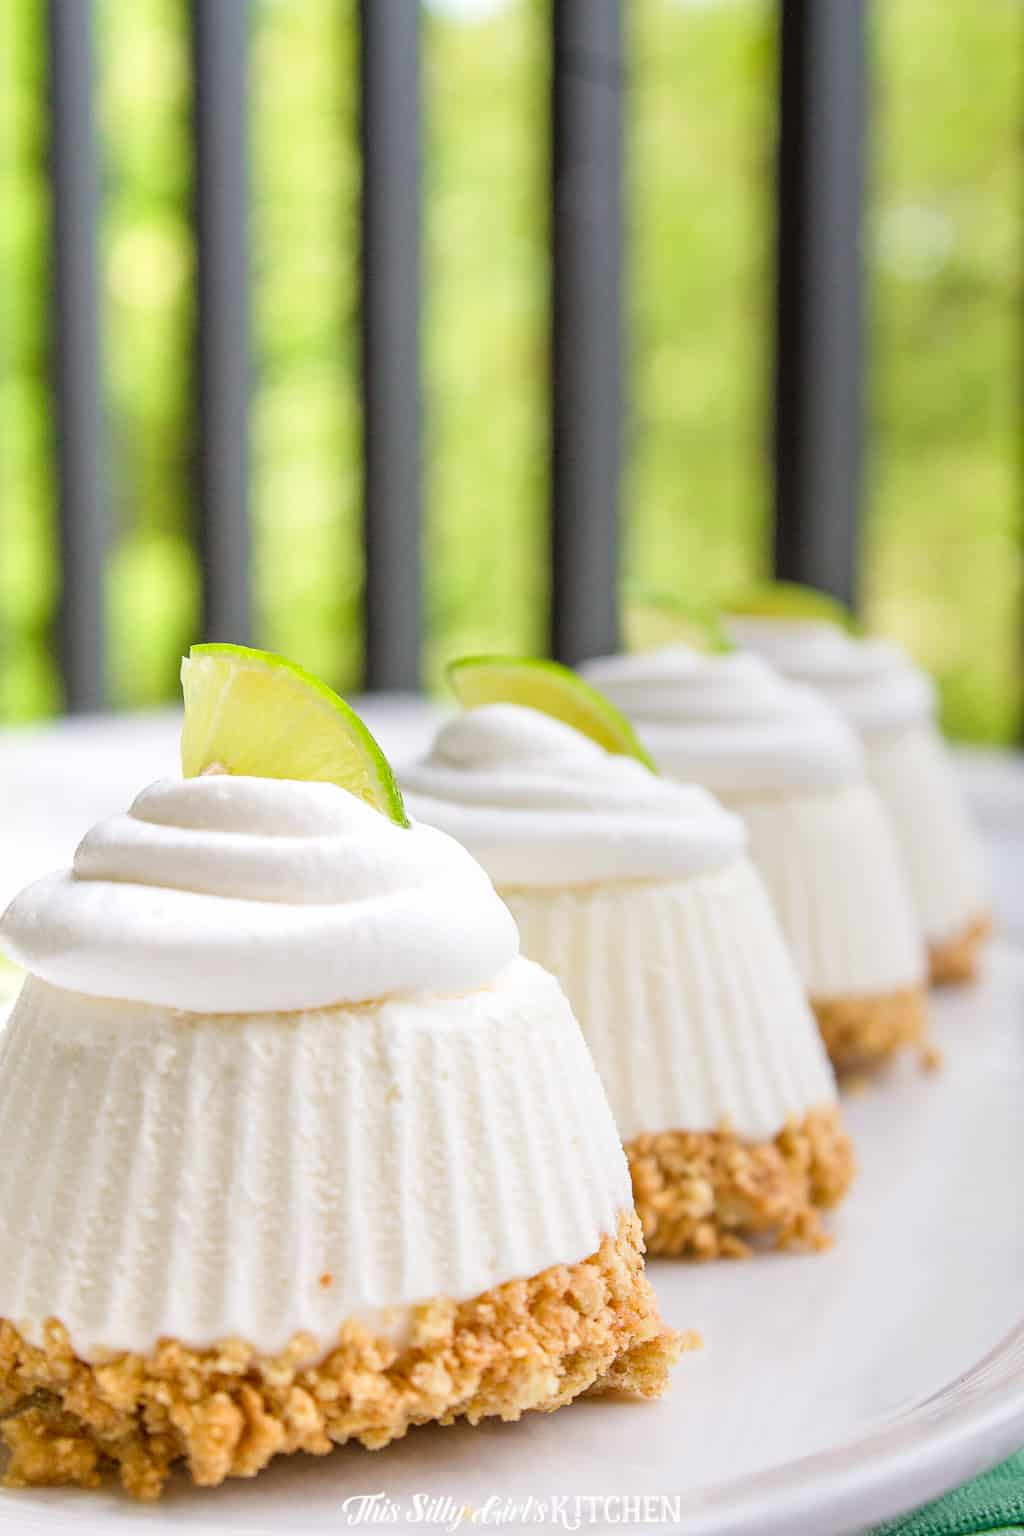 Key Lime Pie, cute little no-bake pies that will have your family raving for more! #recipe from thissillygirlskitchen.com #keylimepie #individualfrozenkeylimepie #keylime #summer #dessert #frozen #minikeylimepie